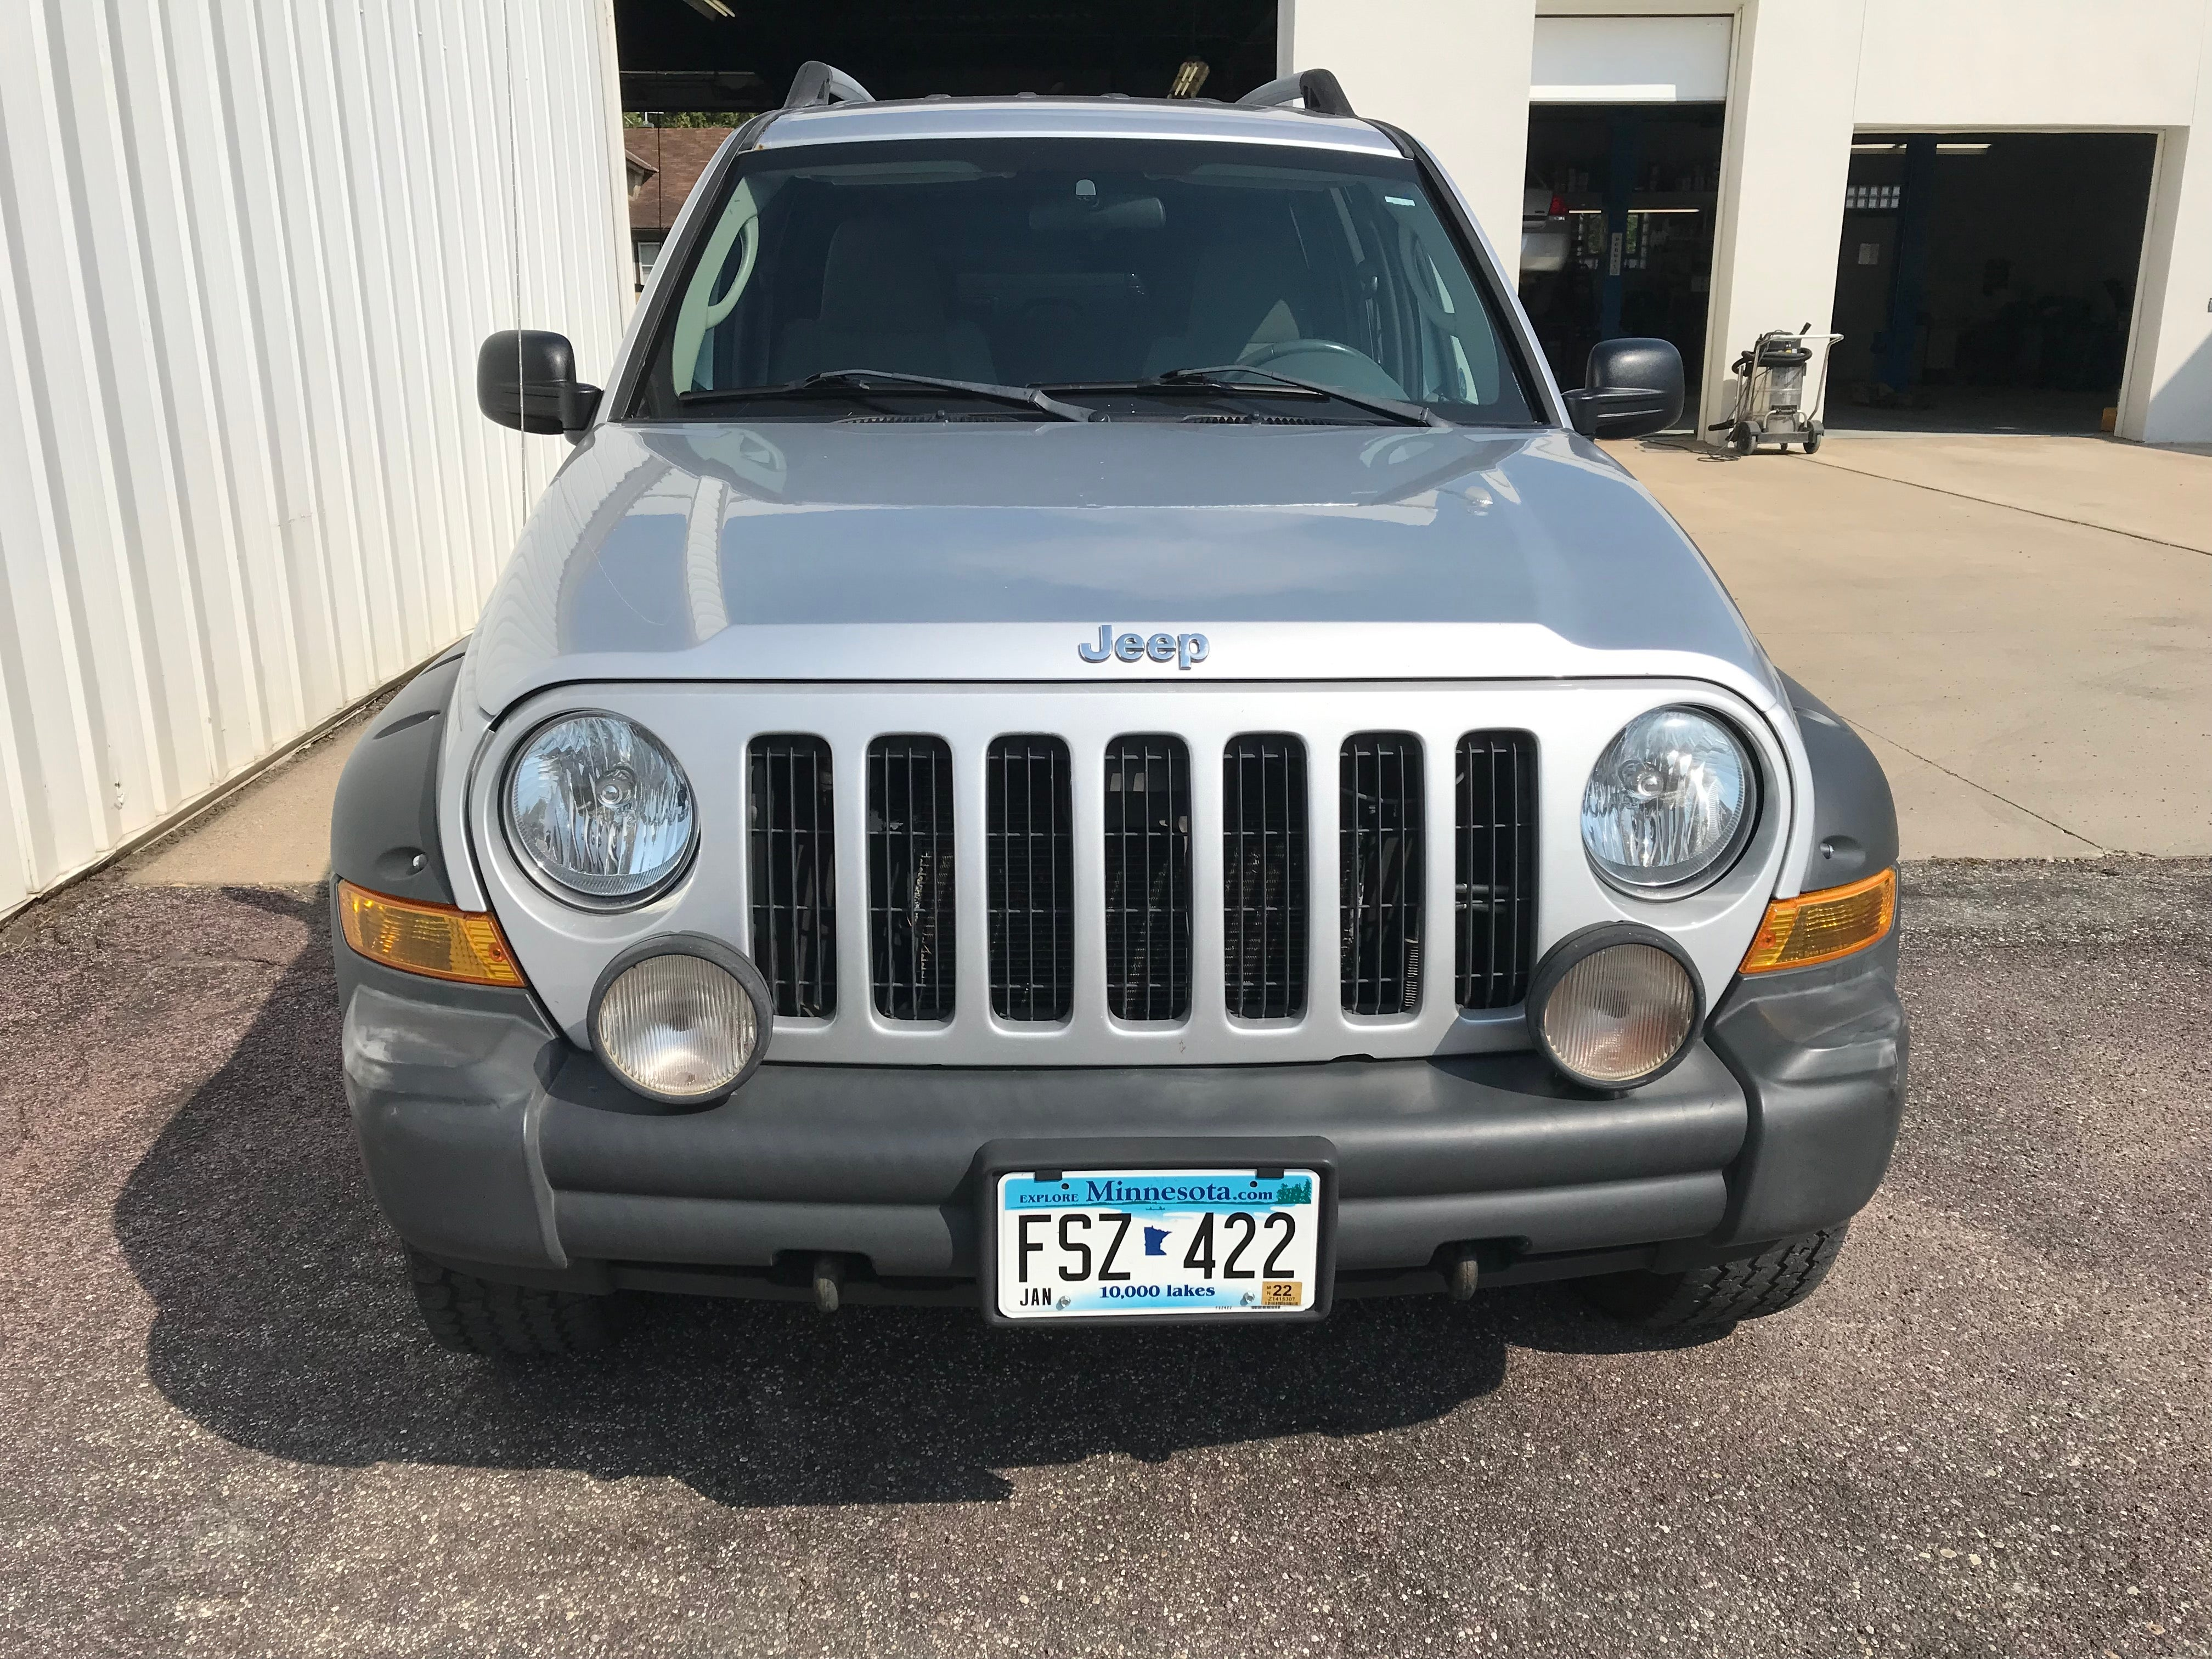 Used 2006 Jeep Liberty Renegade with VIN 1J4GL38K86W194600 for sale in Arlington, Minnesota